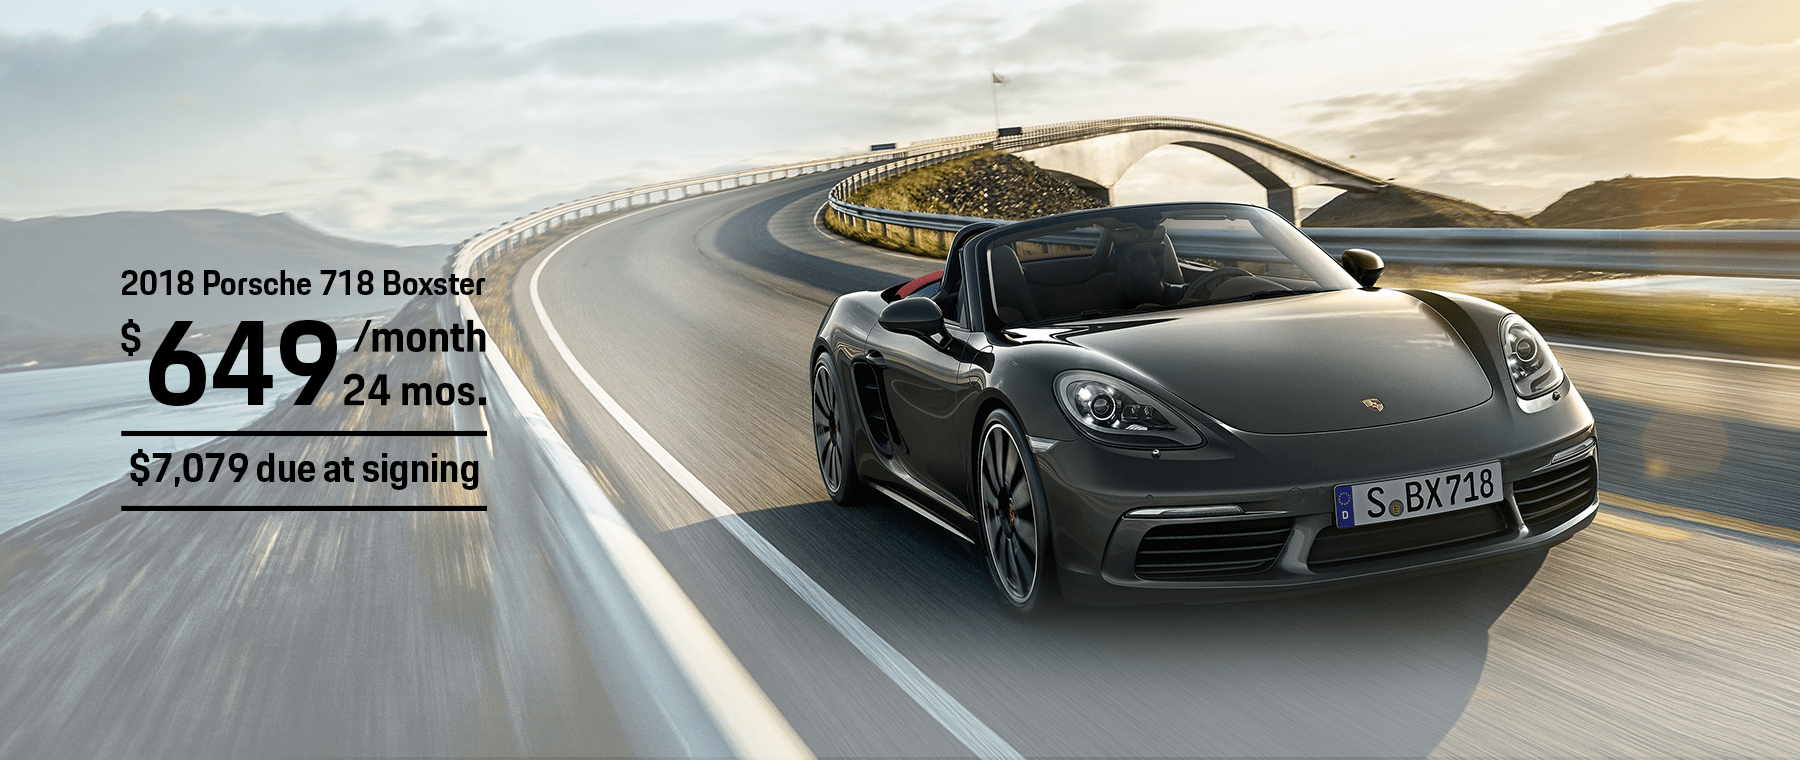 Porsche 718 Boxster Lease offer